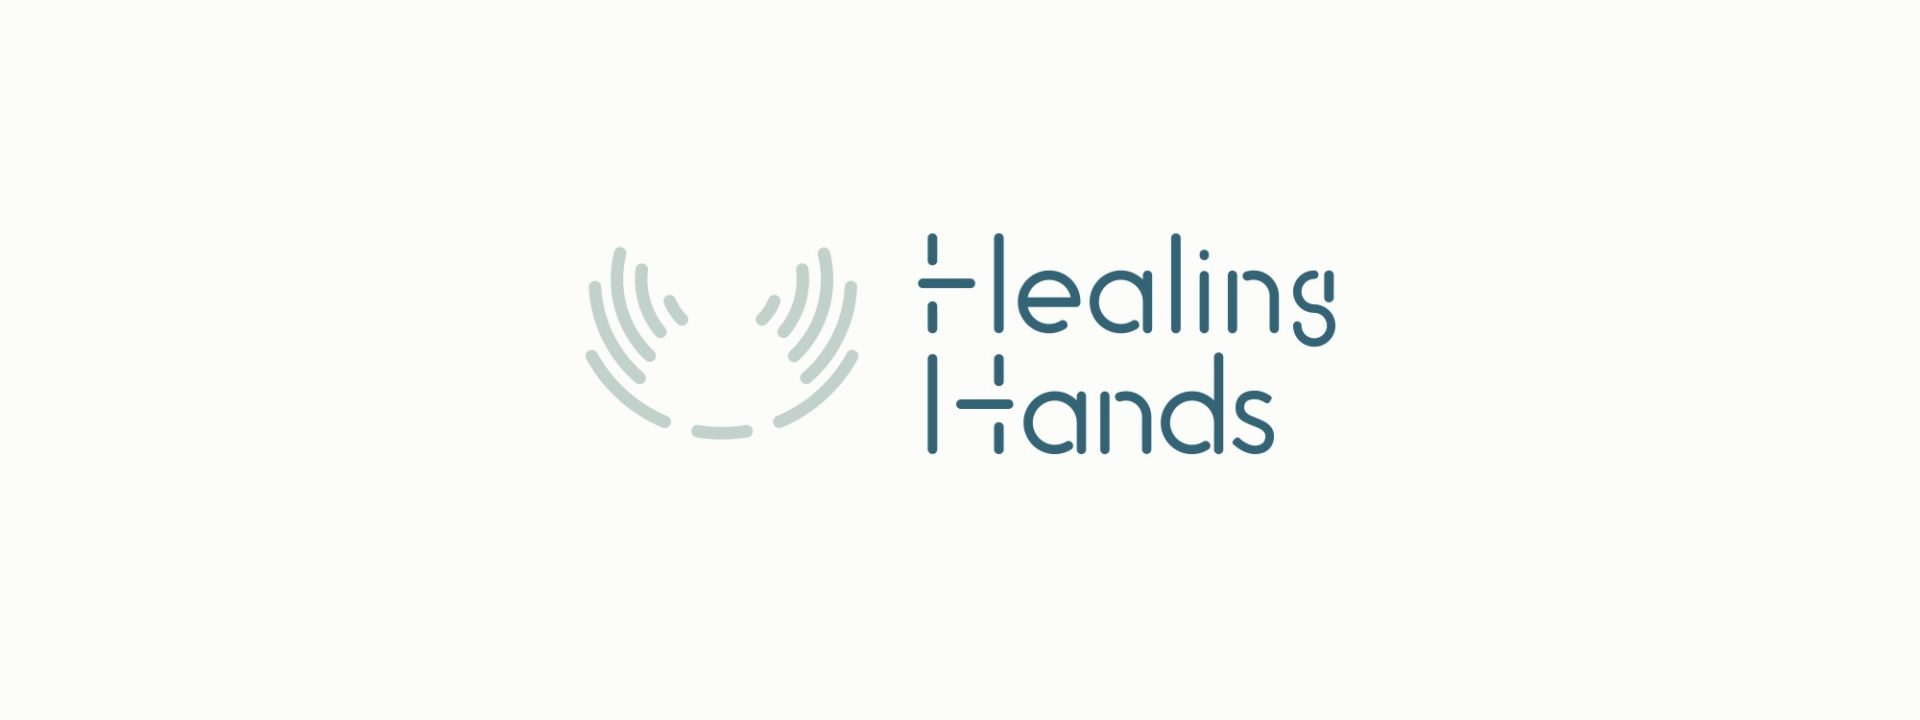 Homeland Estudio - Healing Hands